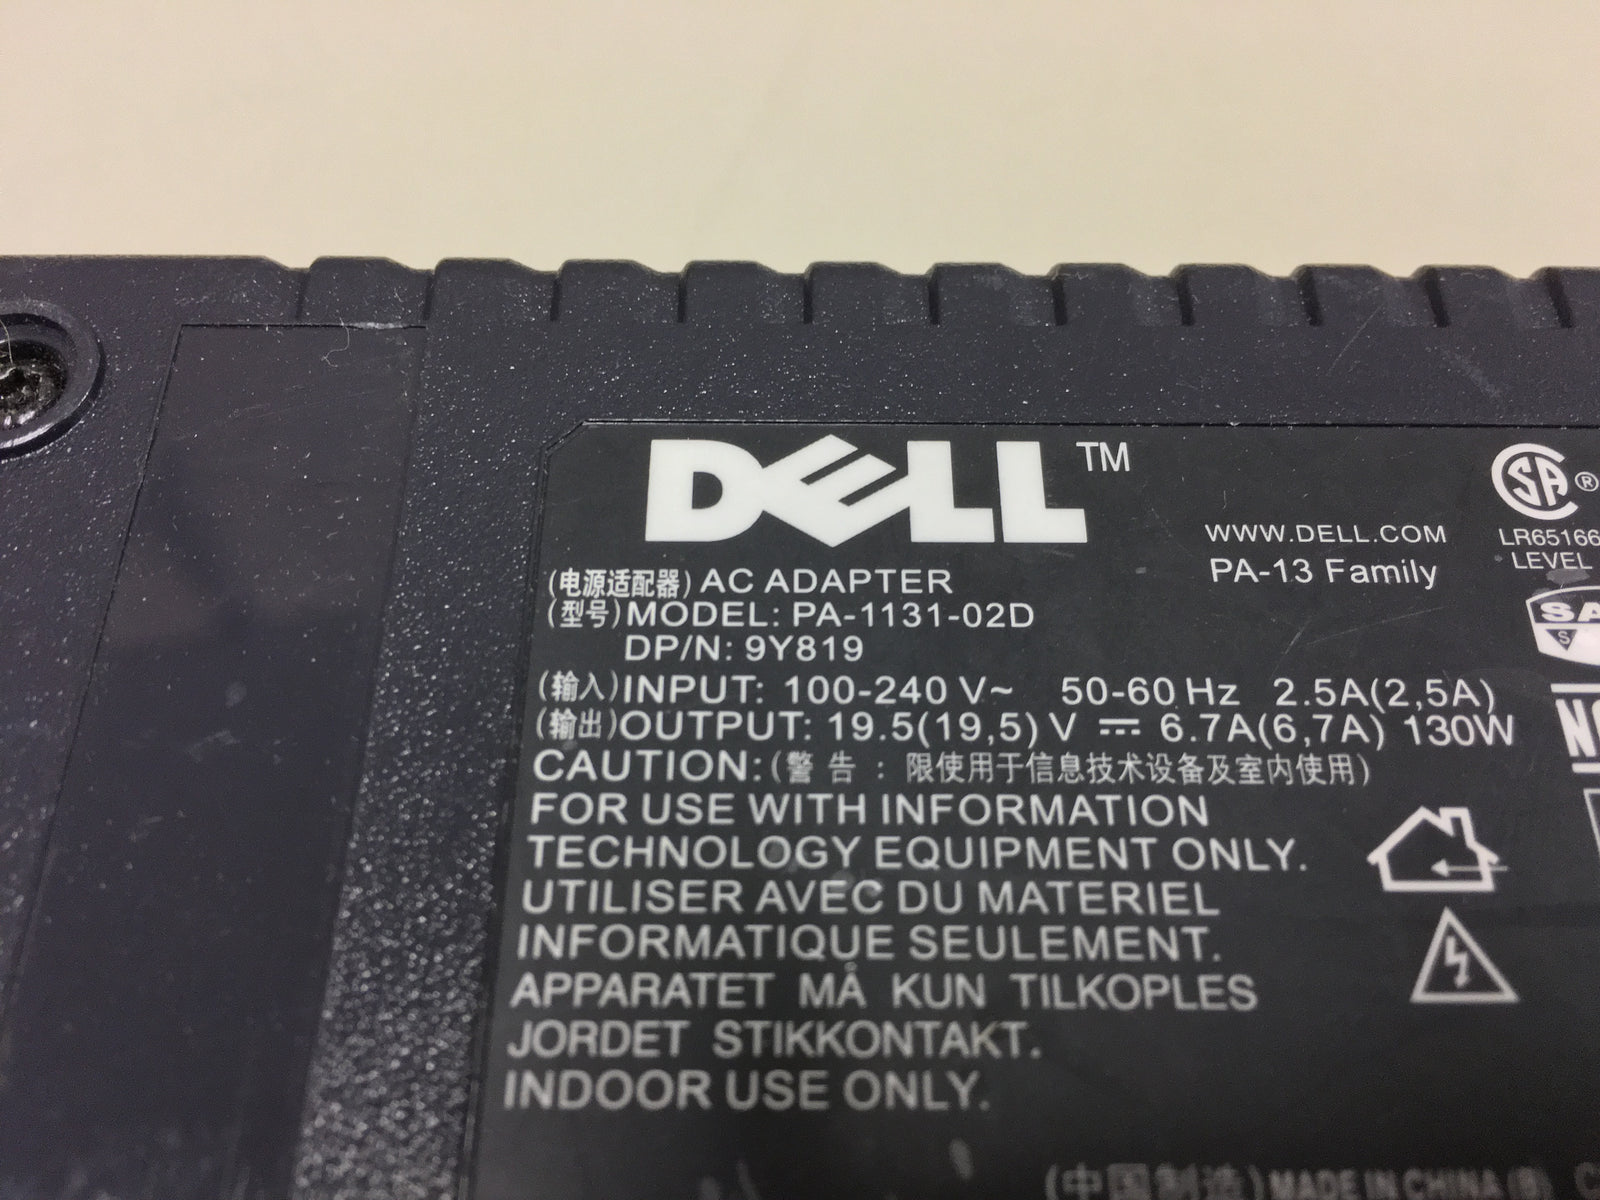 (Lot 5) Dell AC Adapter PA-1131-02D PA-13 Family (Used)